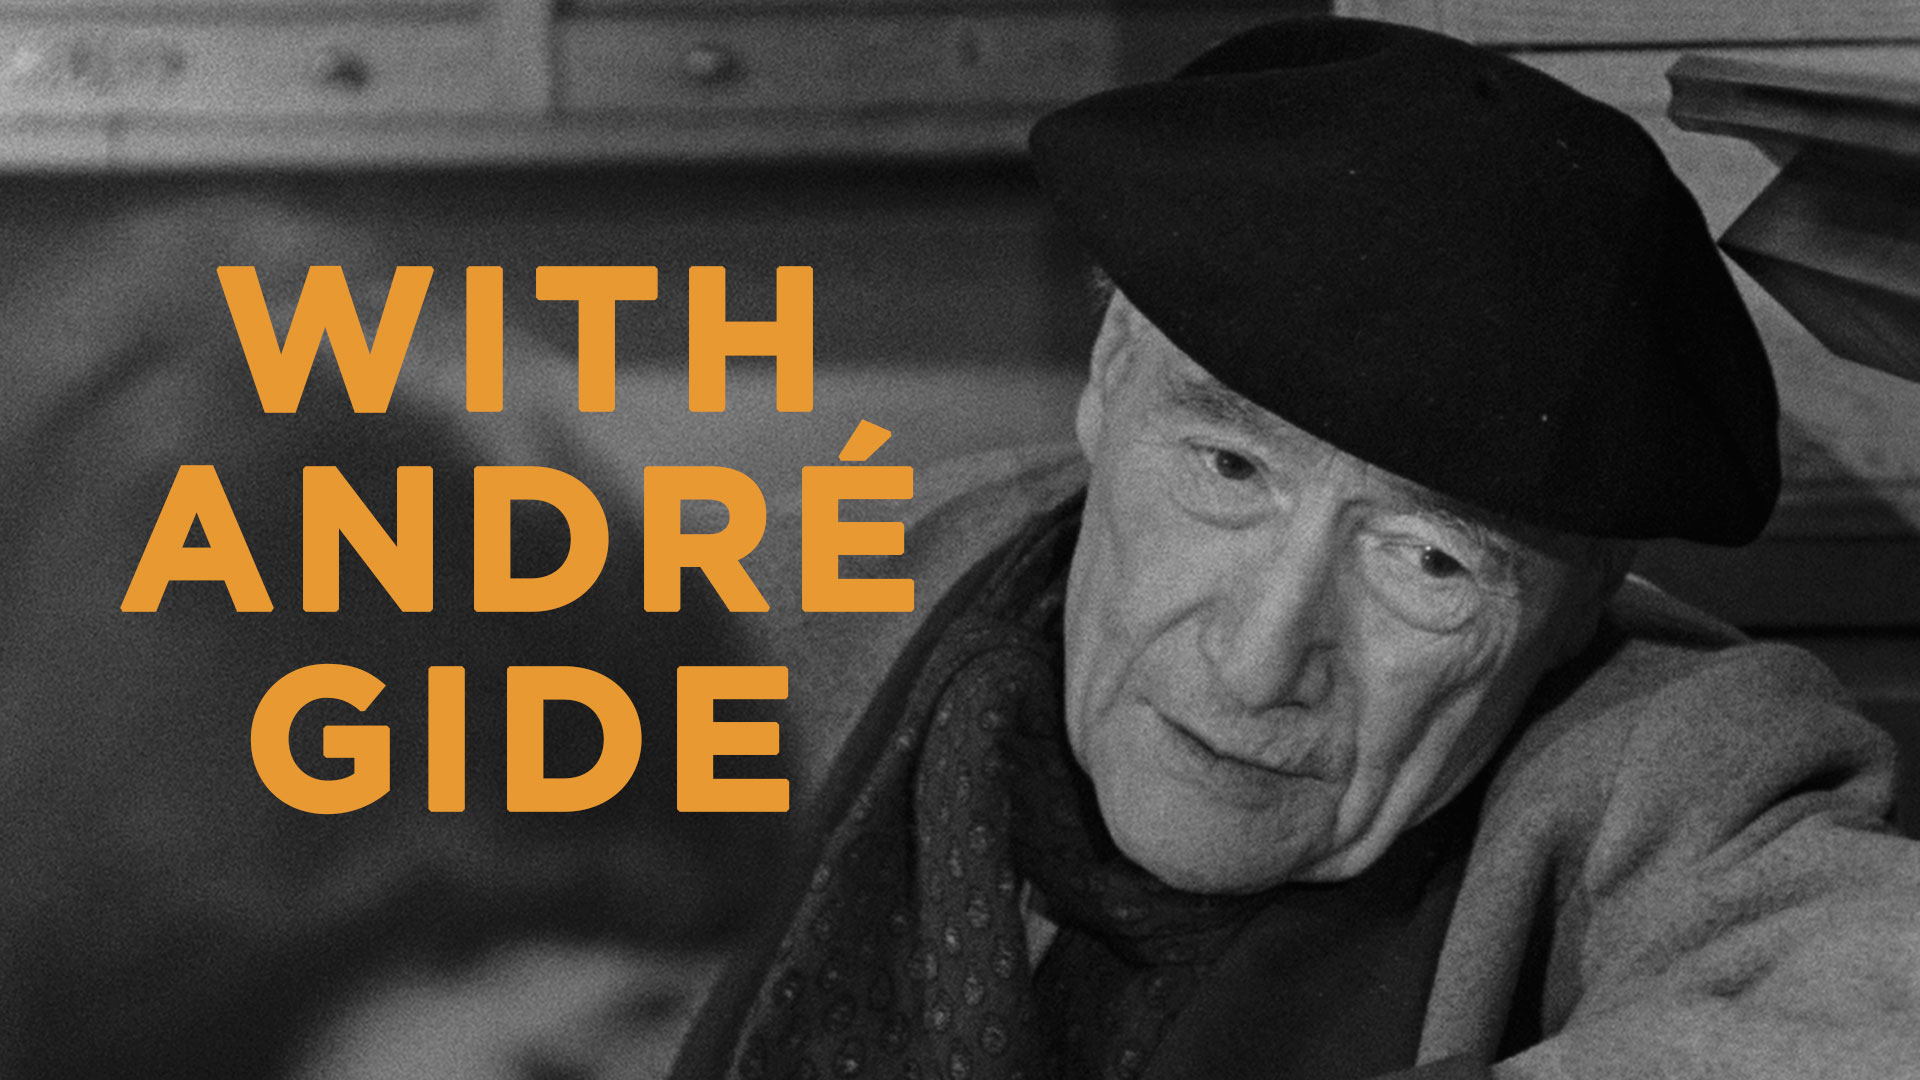 With André Gide - image